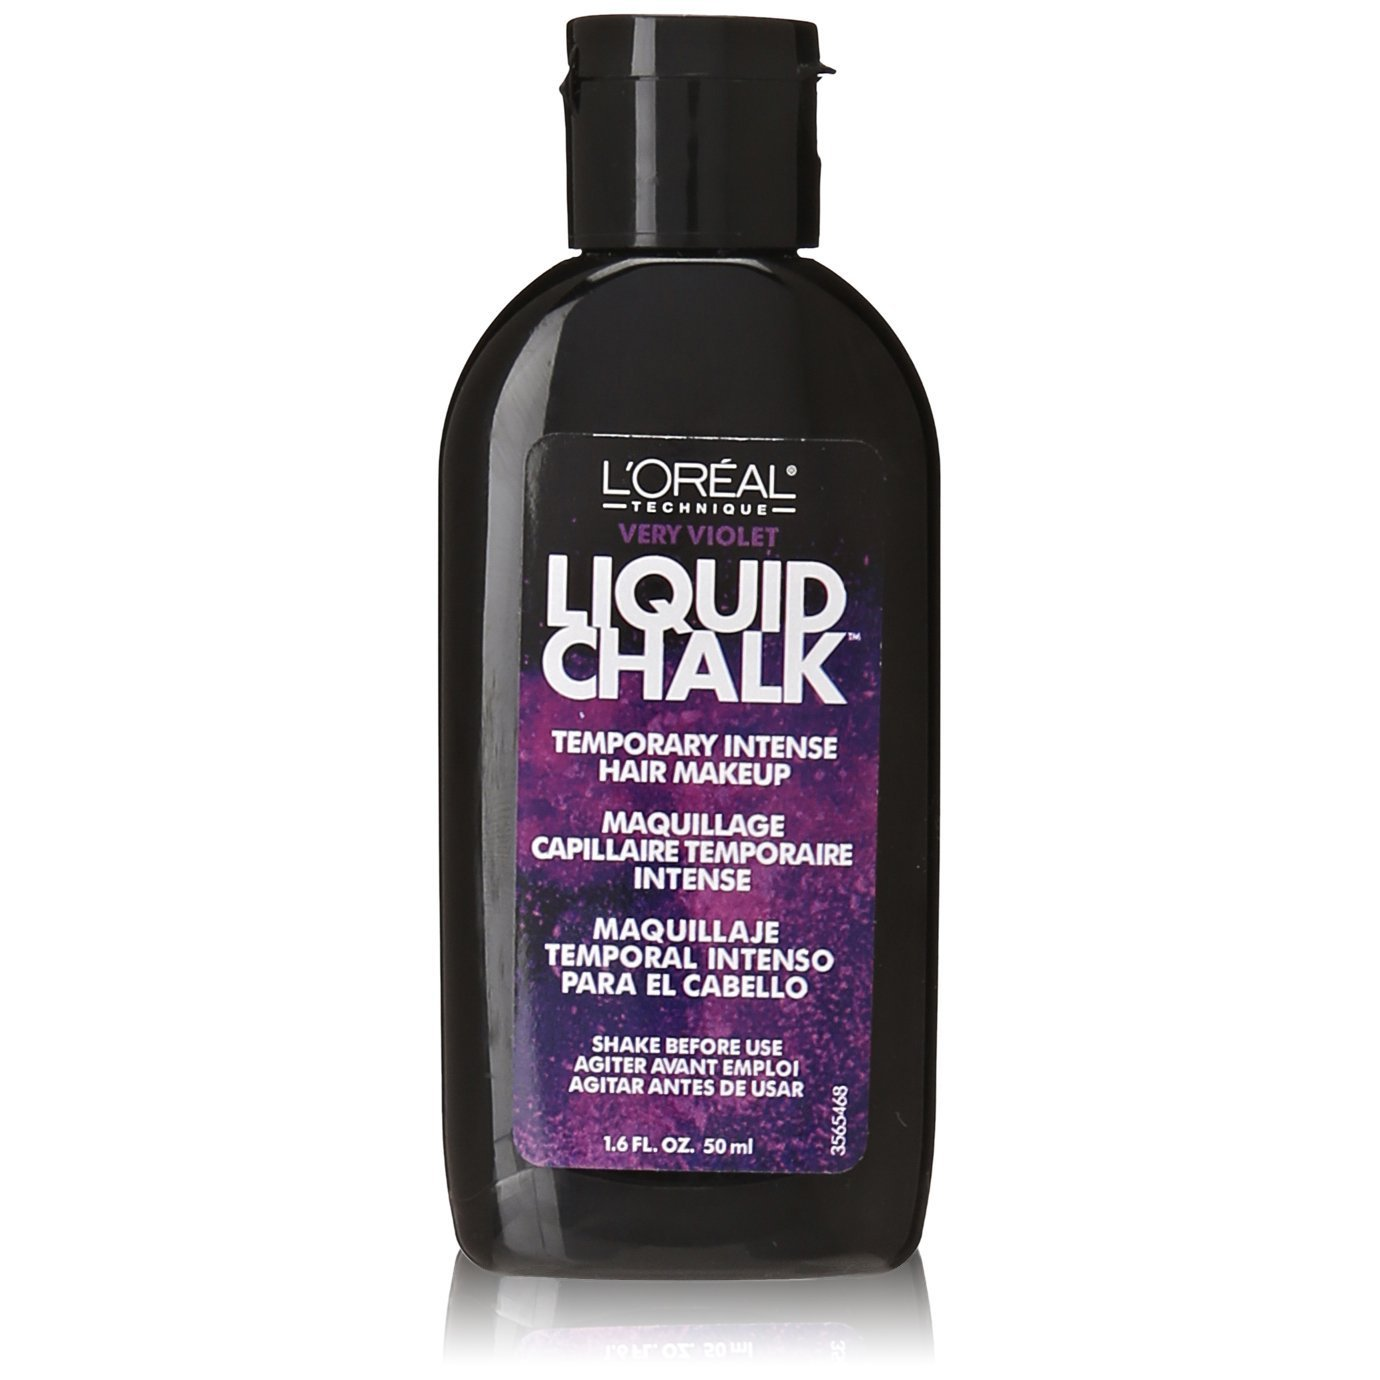 Loreal Liquid Chalk Hair Makeup - Very Violet 1.6 Ounce (47ml) (3 Pack) L' Oreal Paris